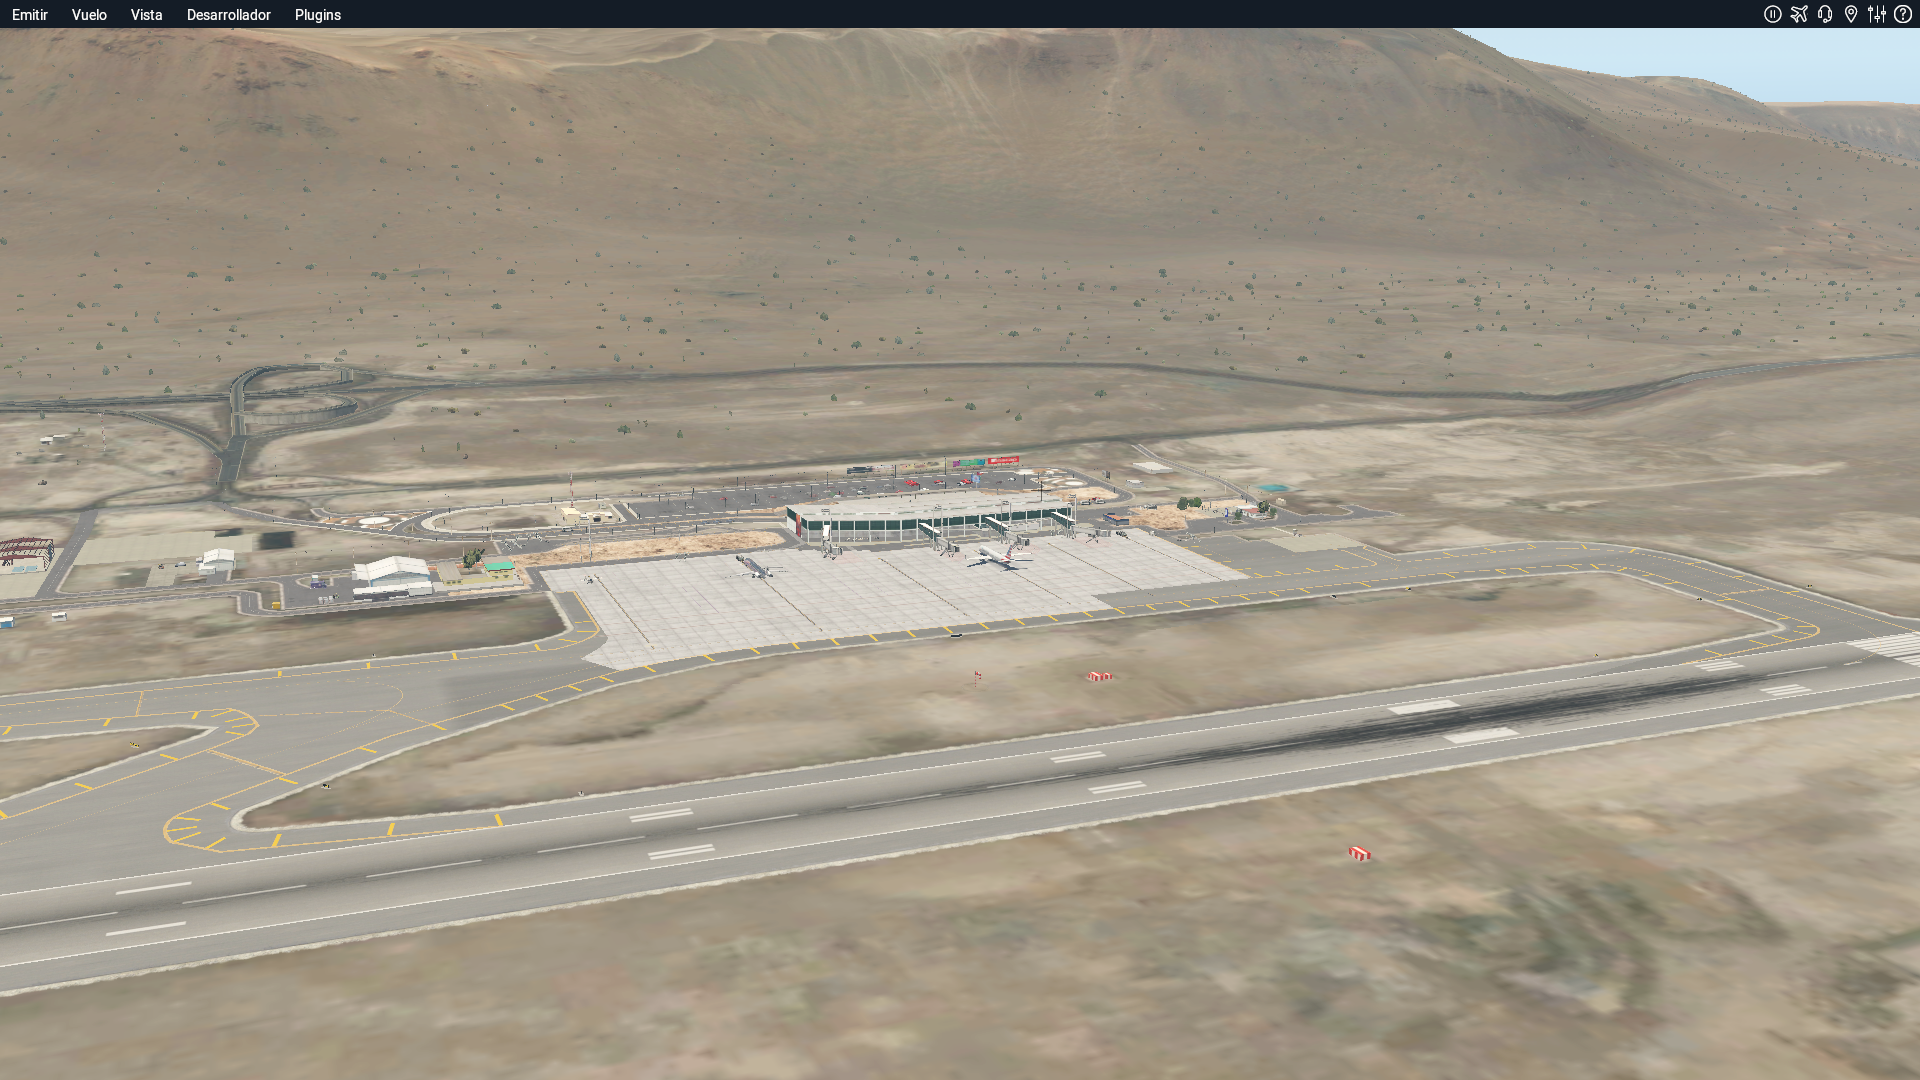 CHILE AIRPORTS 3D - SCDA, DIEGO ARACENA INTERNATIONAL AIRPORT, IQUIQUE, CHILE, X-PLANE11